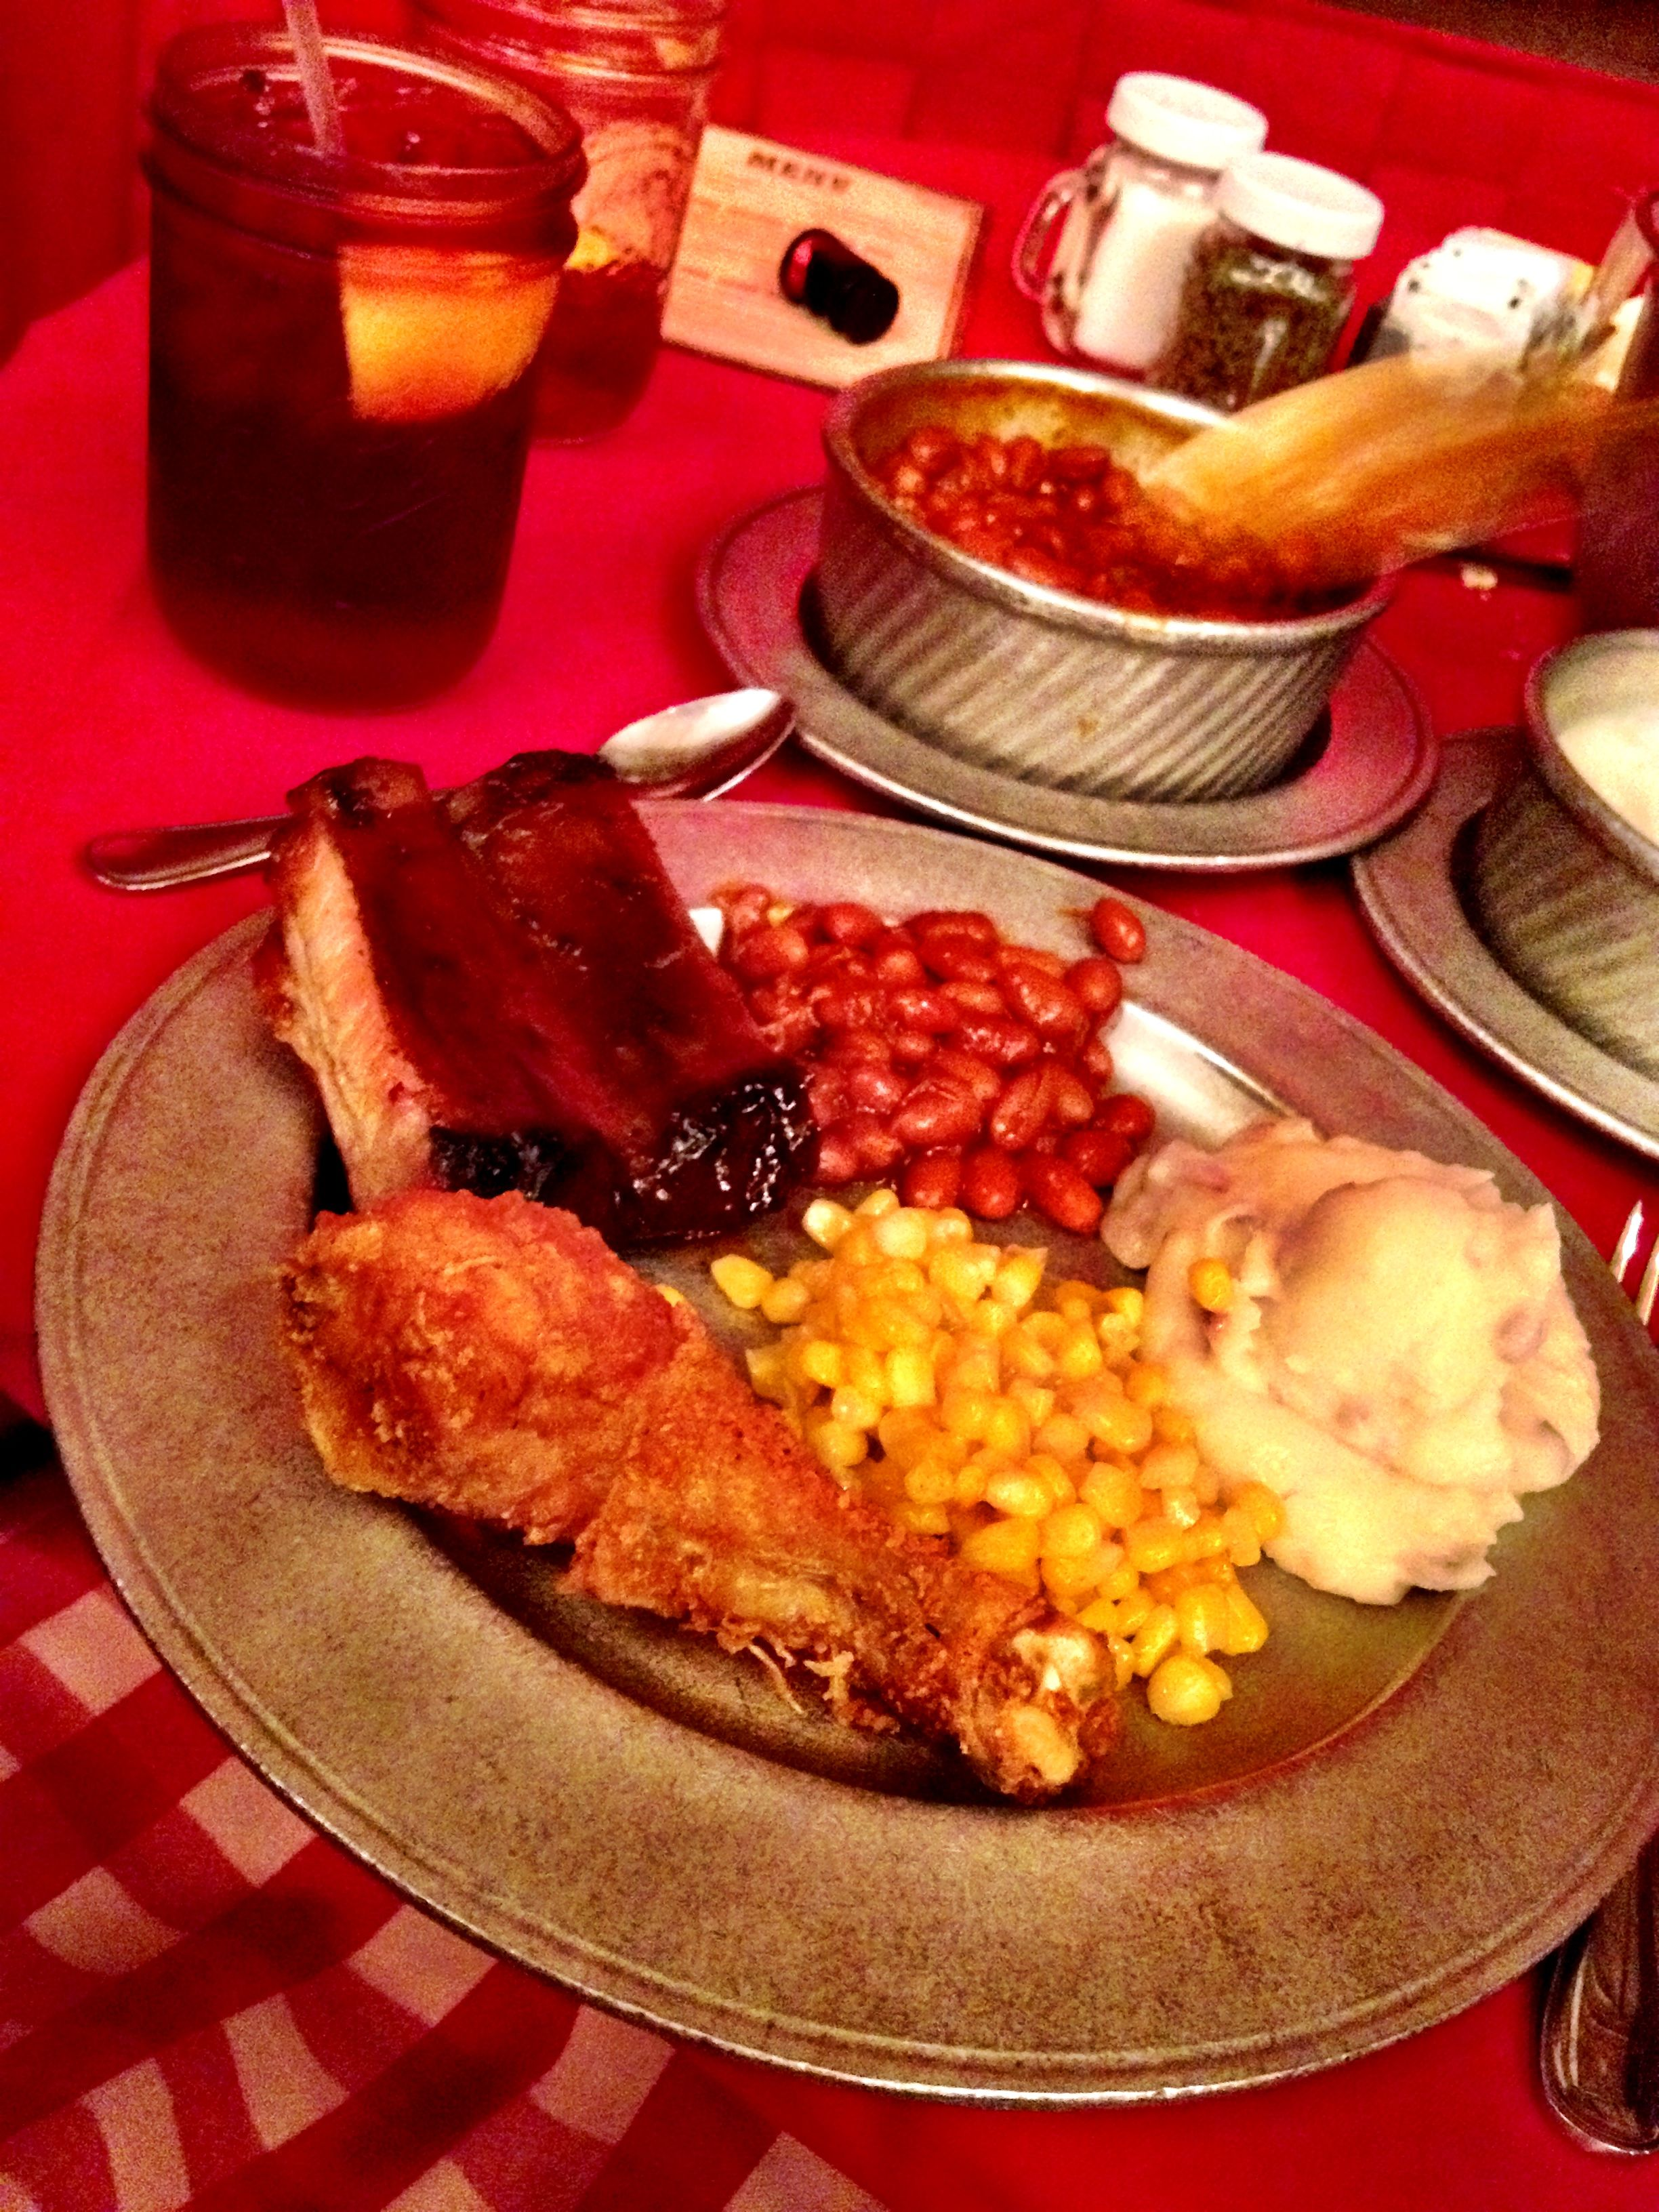 Hoop Dee Doo Musical Revue Dinner Sangria Fried Chicken Ribs Beans Mashed Potatoes And Corn Yummy Dinners Disney Restaurants Disney World Food